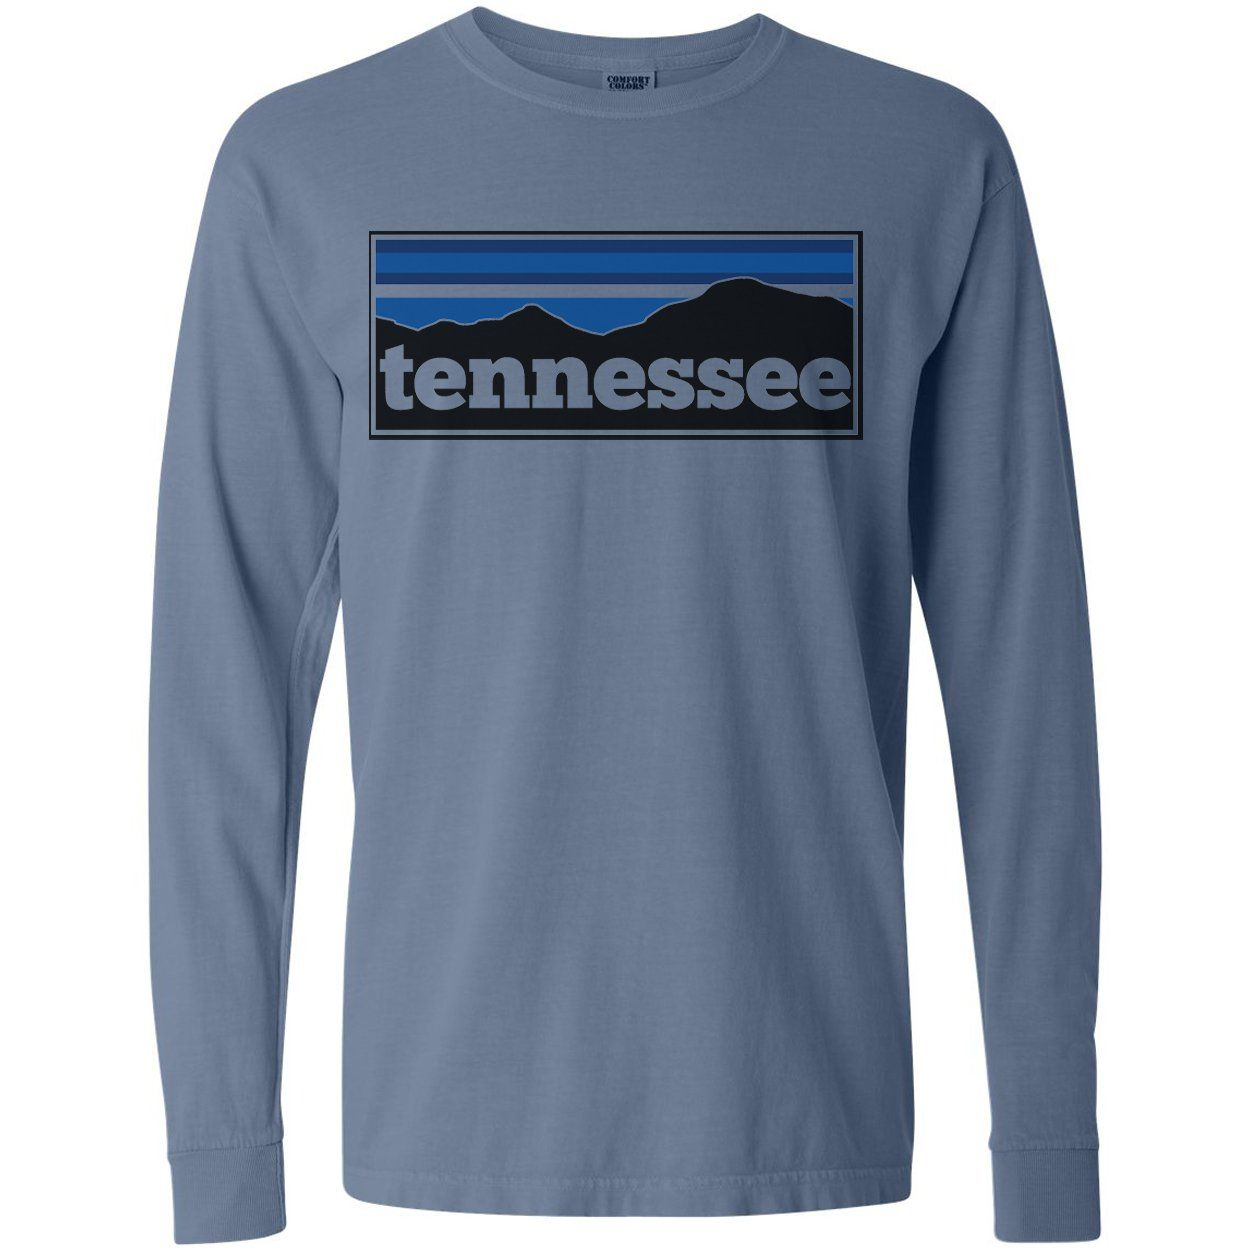 Adult Tennessee Mountain Range On A Long Sleeve Blue Jean T Shirt